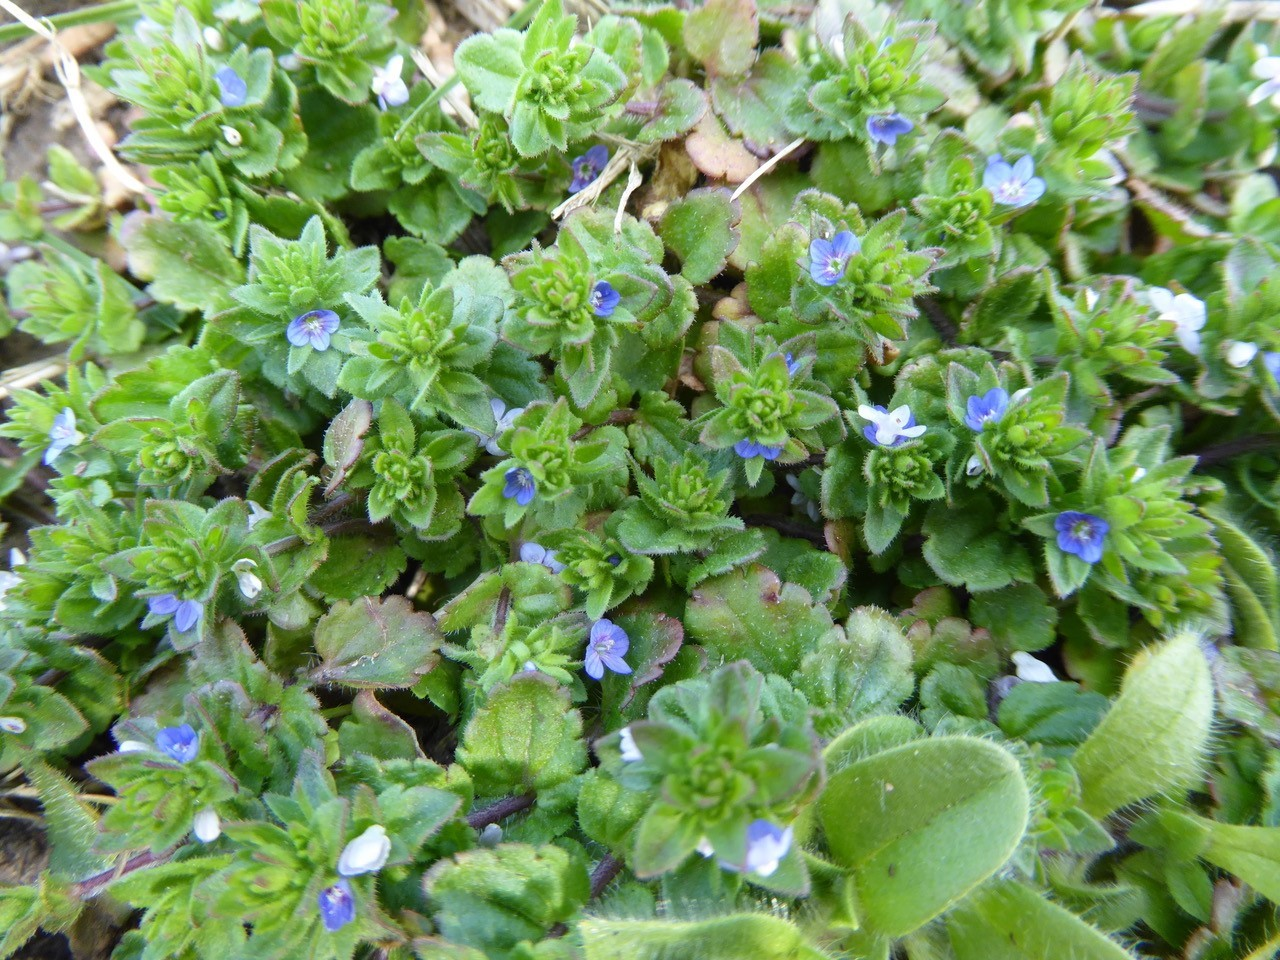 Wall Speedwell (Veronica arvensis), Grove Park, Doncaster